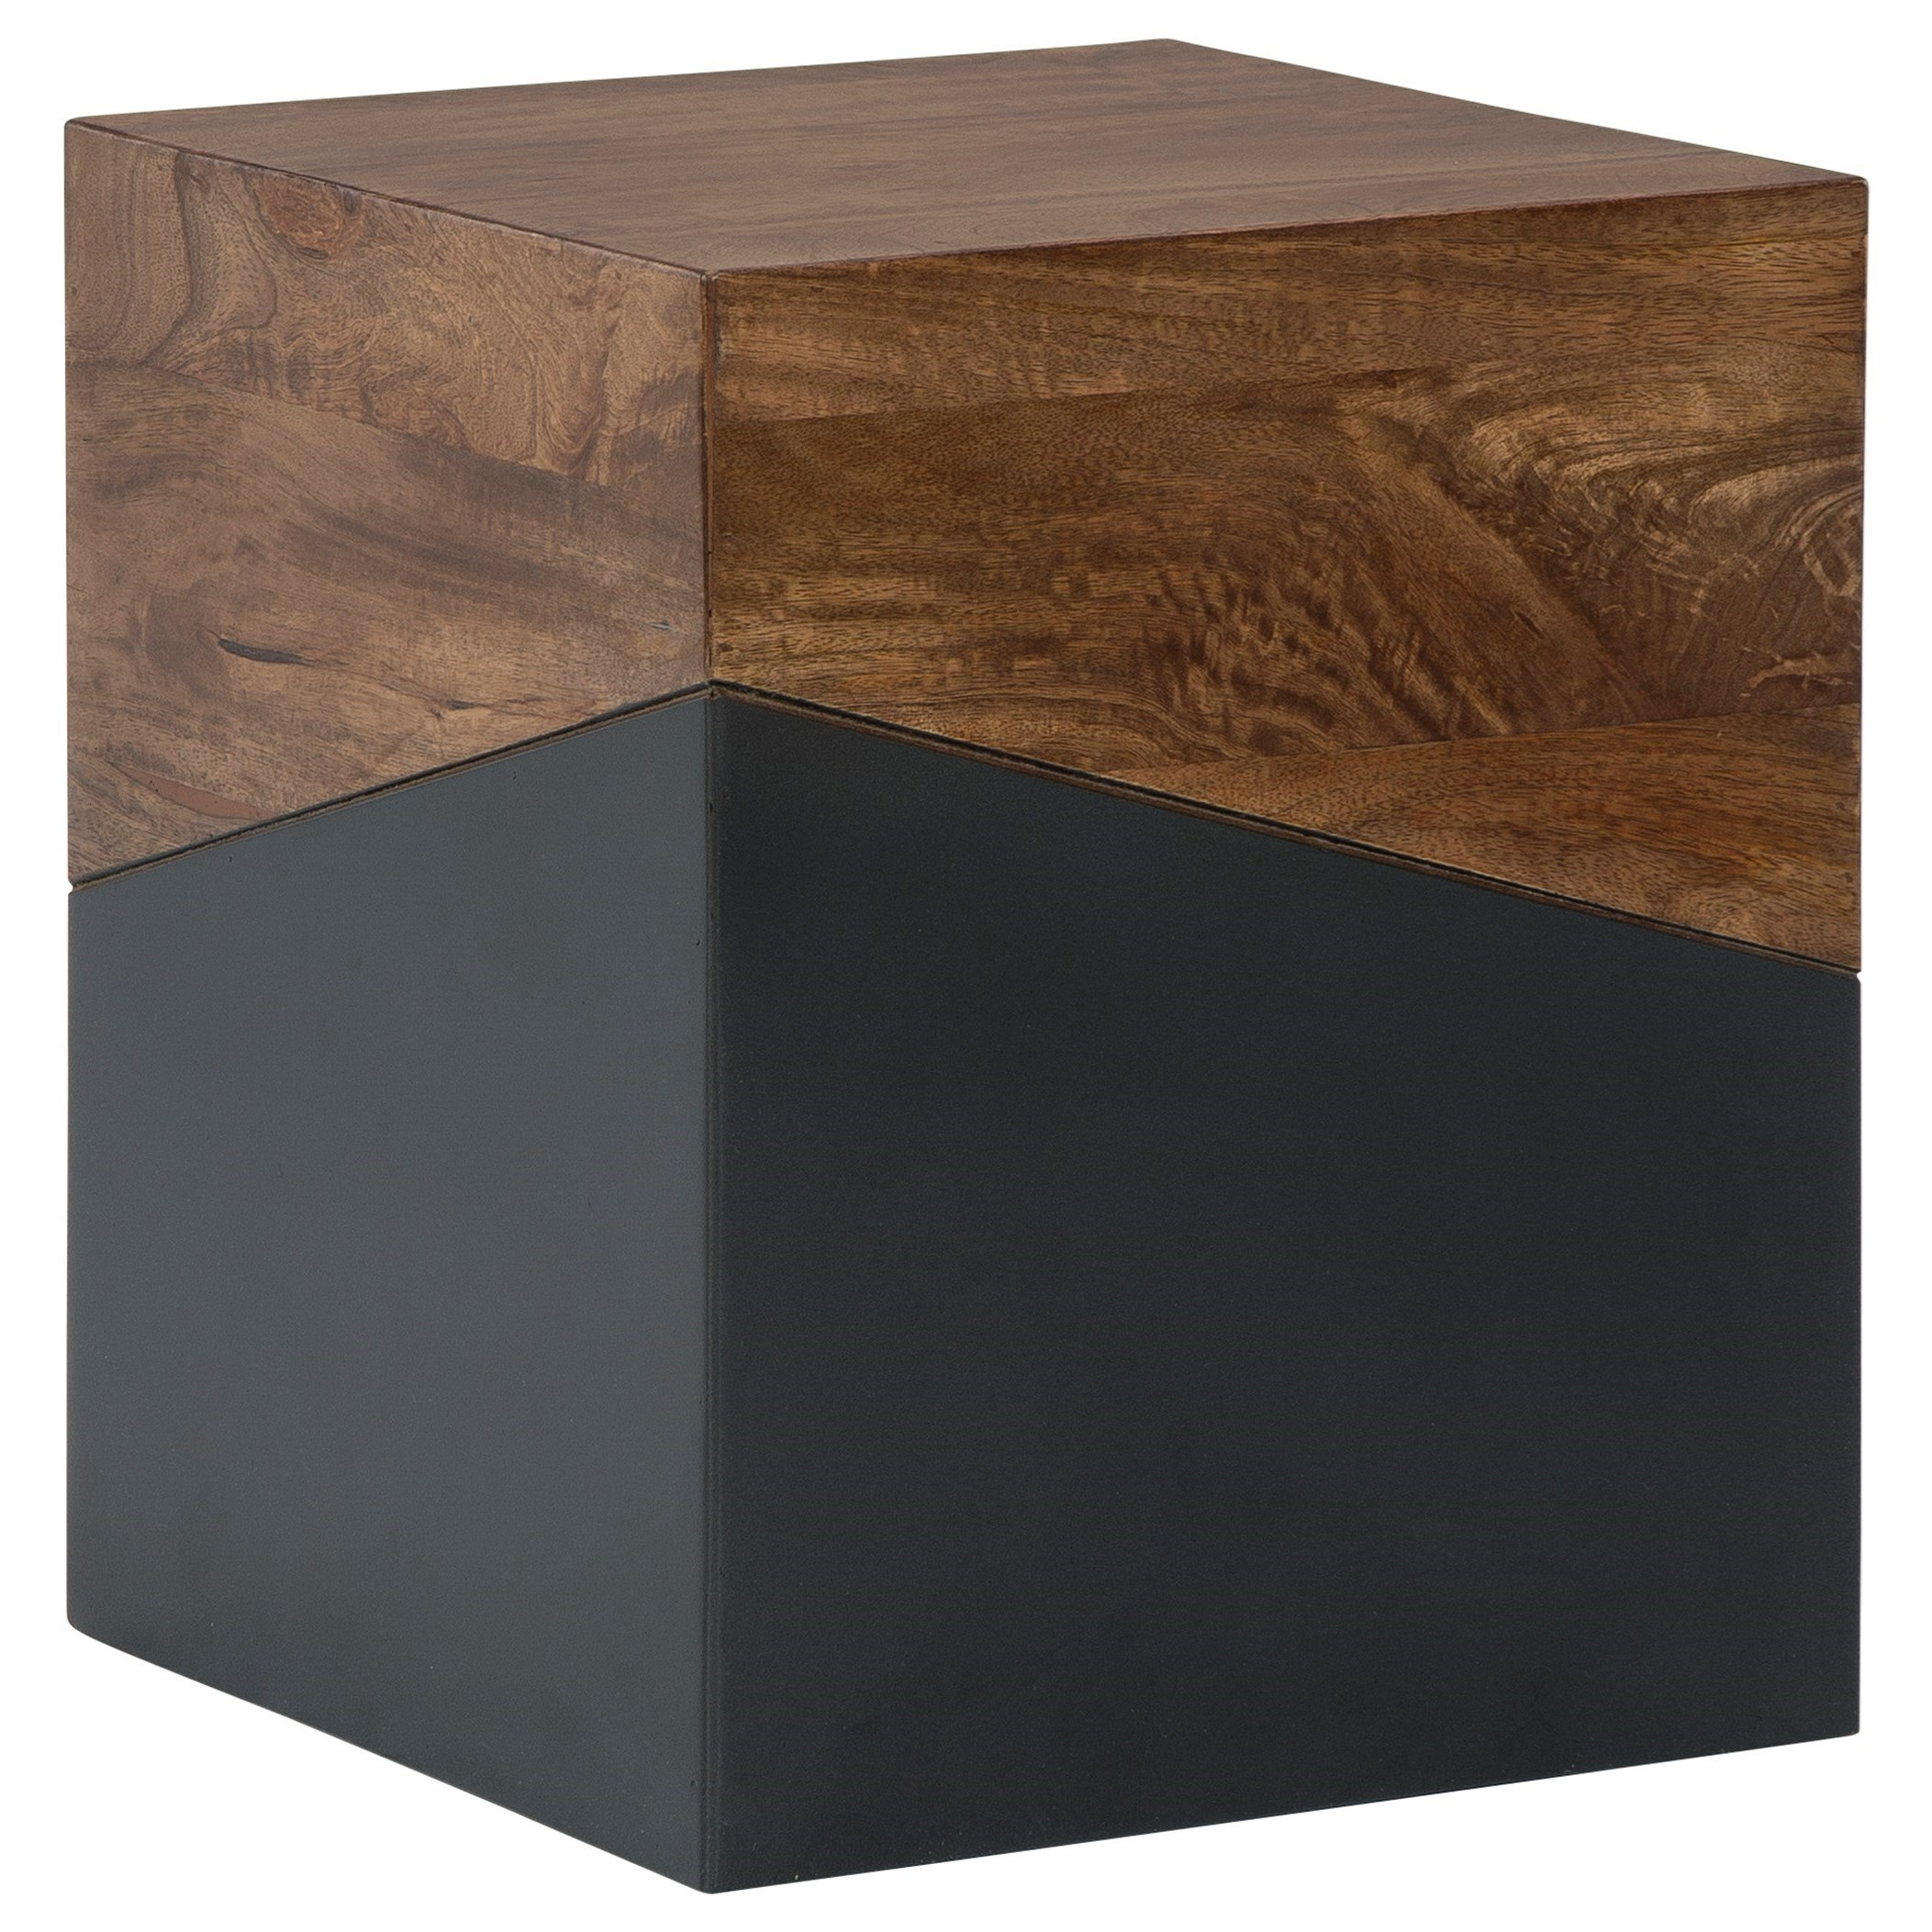 Trailbend Accent Table by Signature Design by Ashley at HomeWorld Furniture